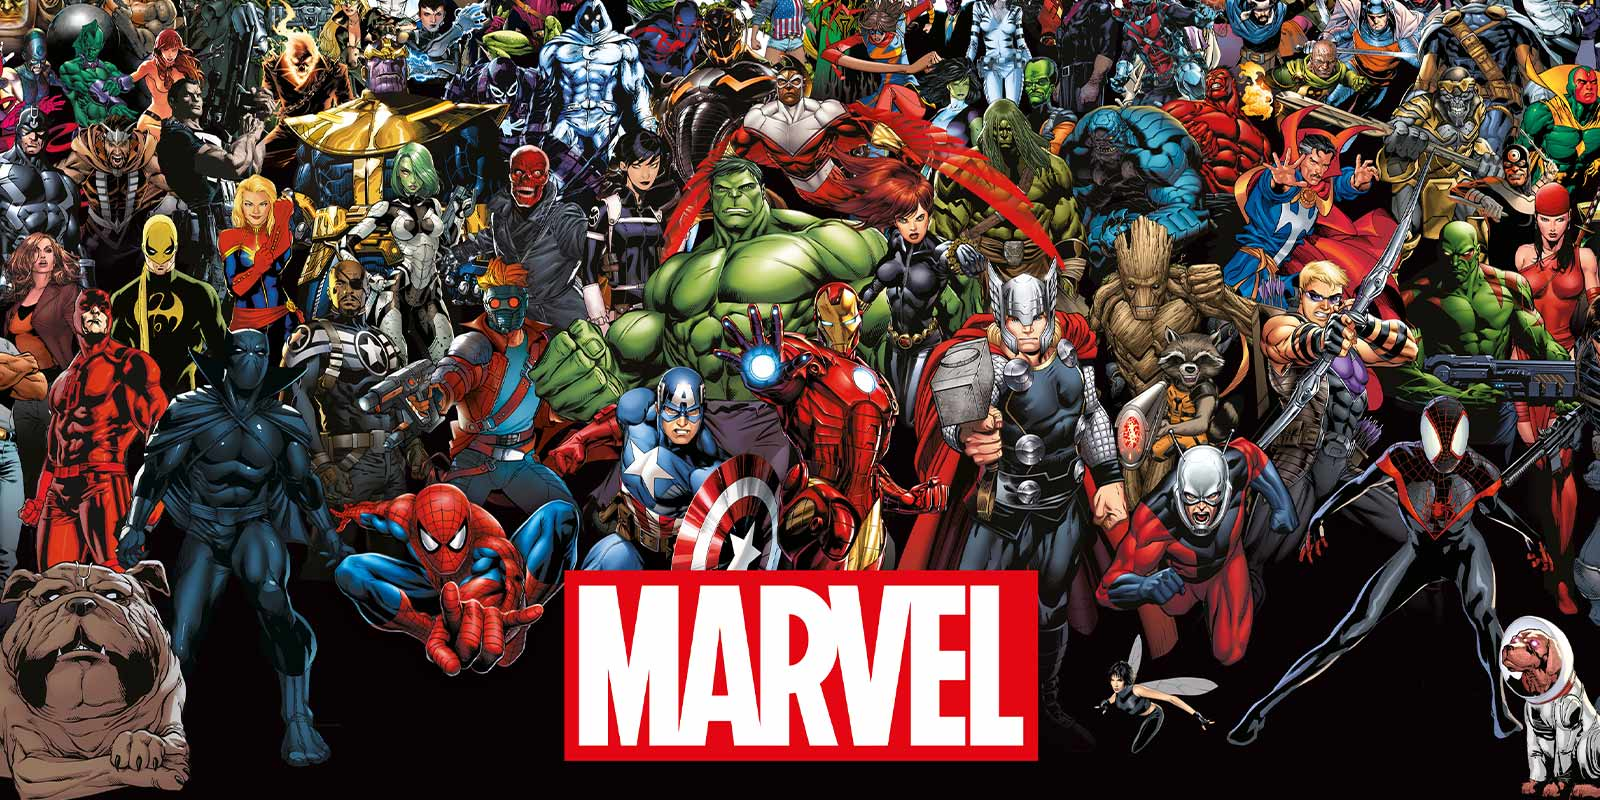 MARVEL-header-marvel-figures-premium-modern-art